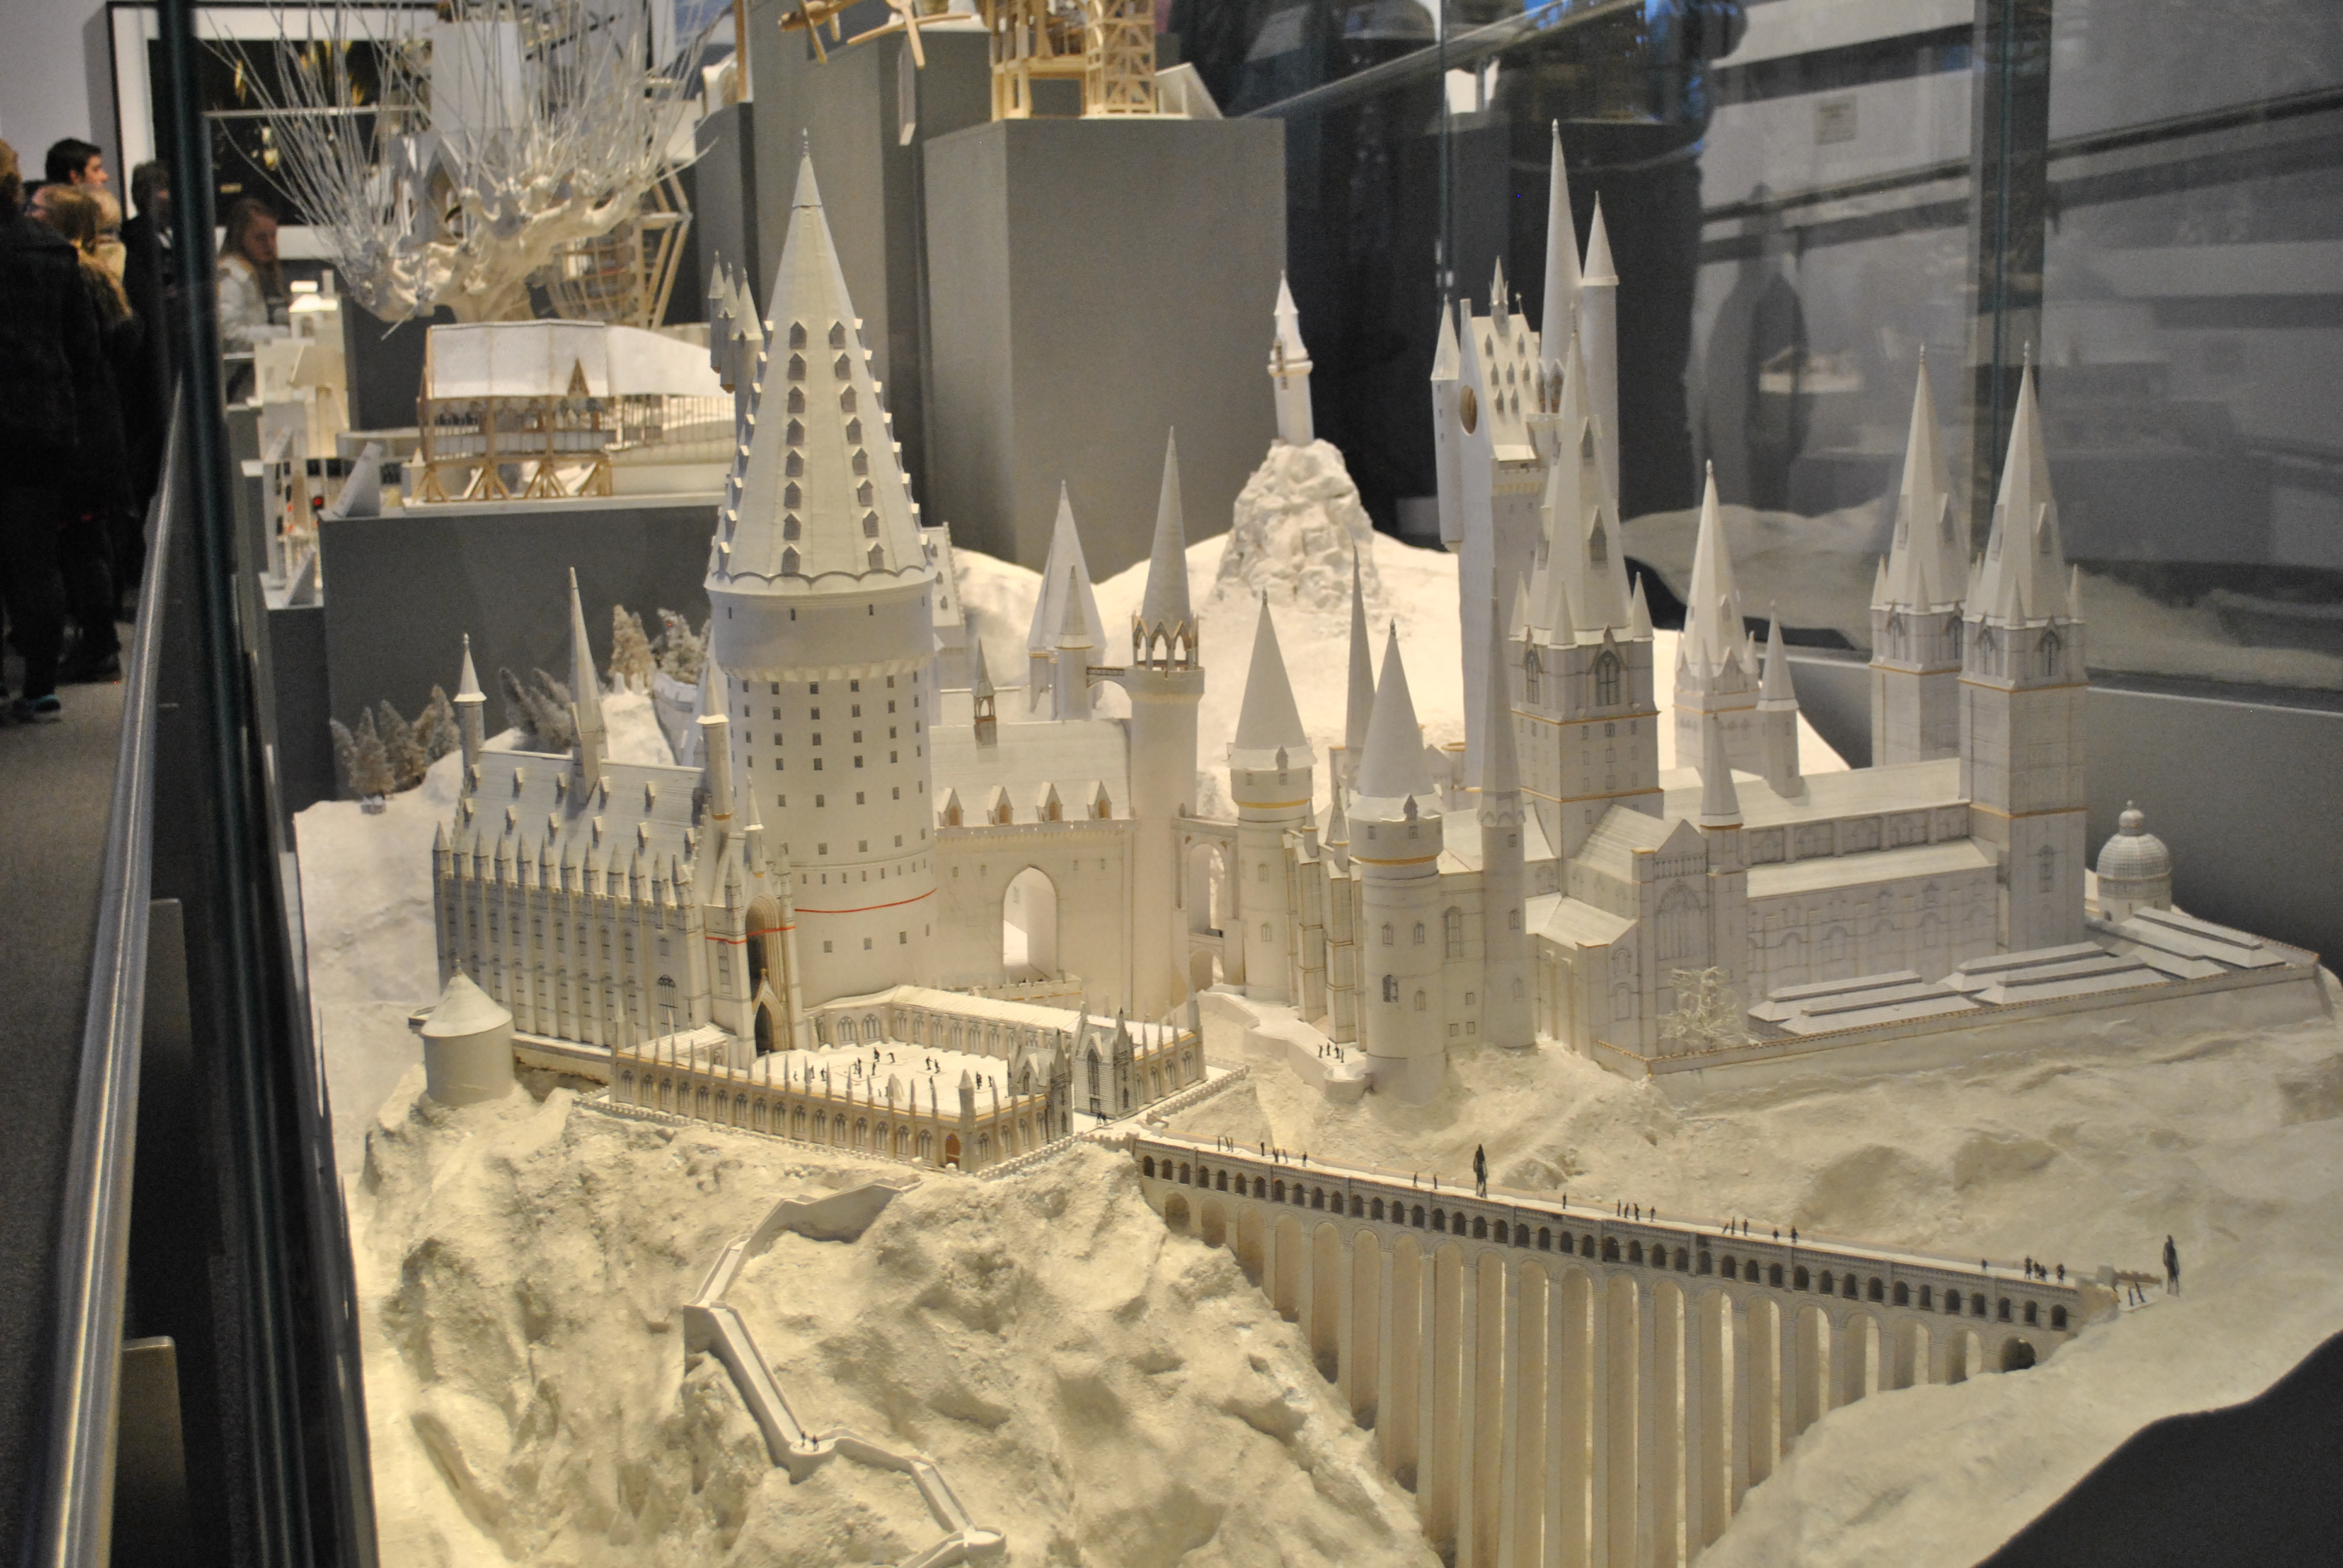 The making of harry potter the power of travel near the end harry potter paper model sets malvernweather Image collections